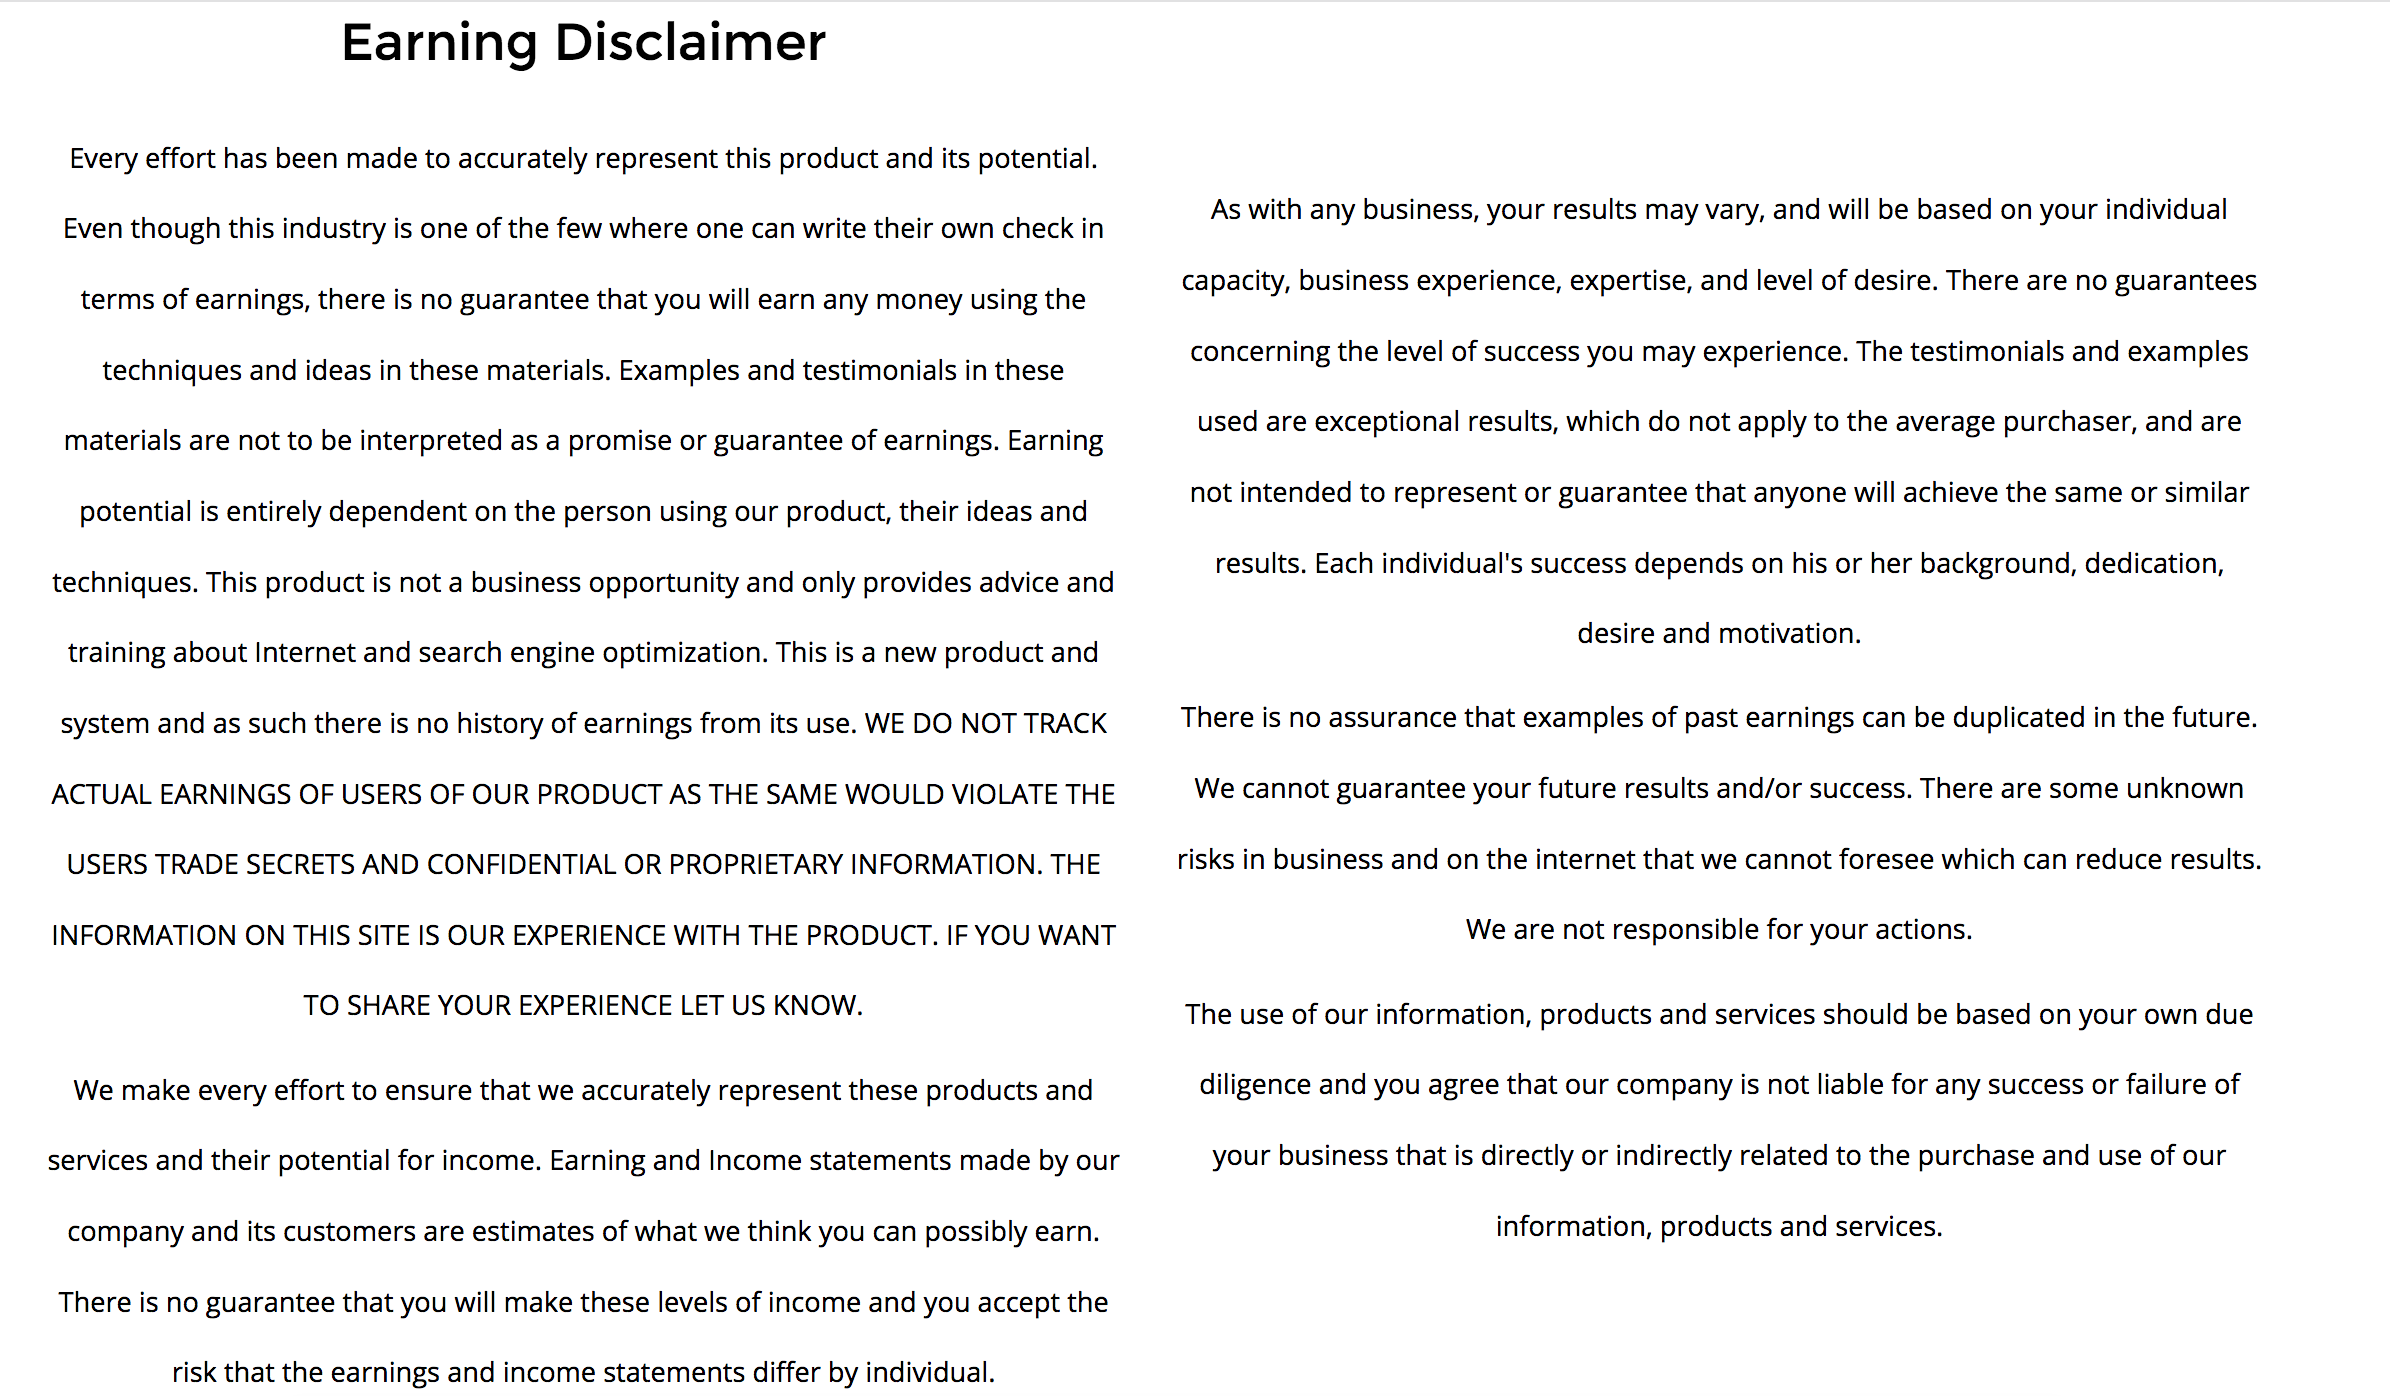 Earnings Disclaimer >> Earning Disclaimer